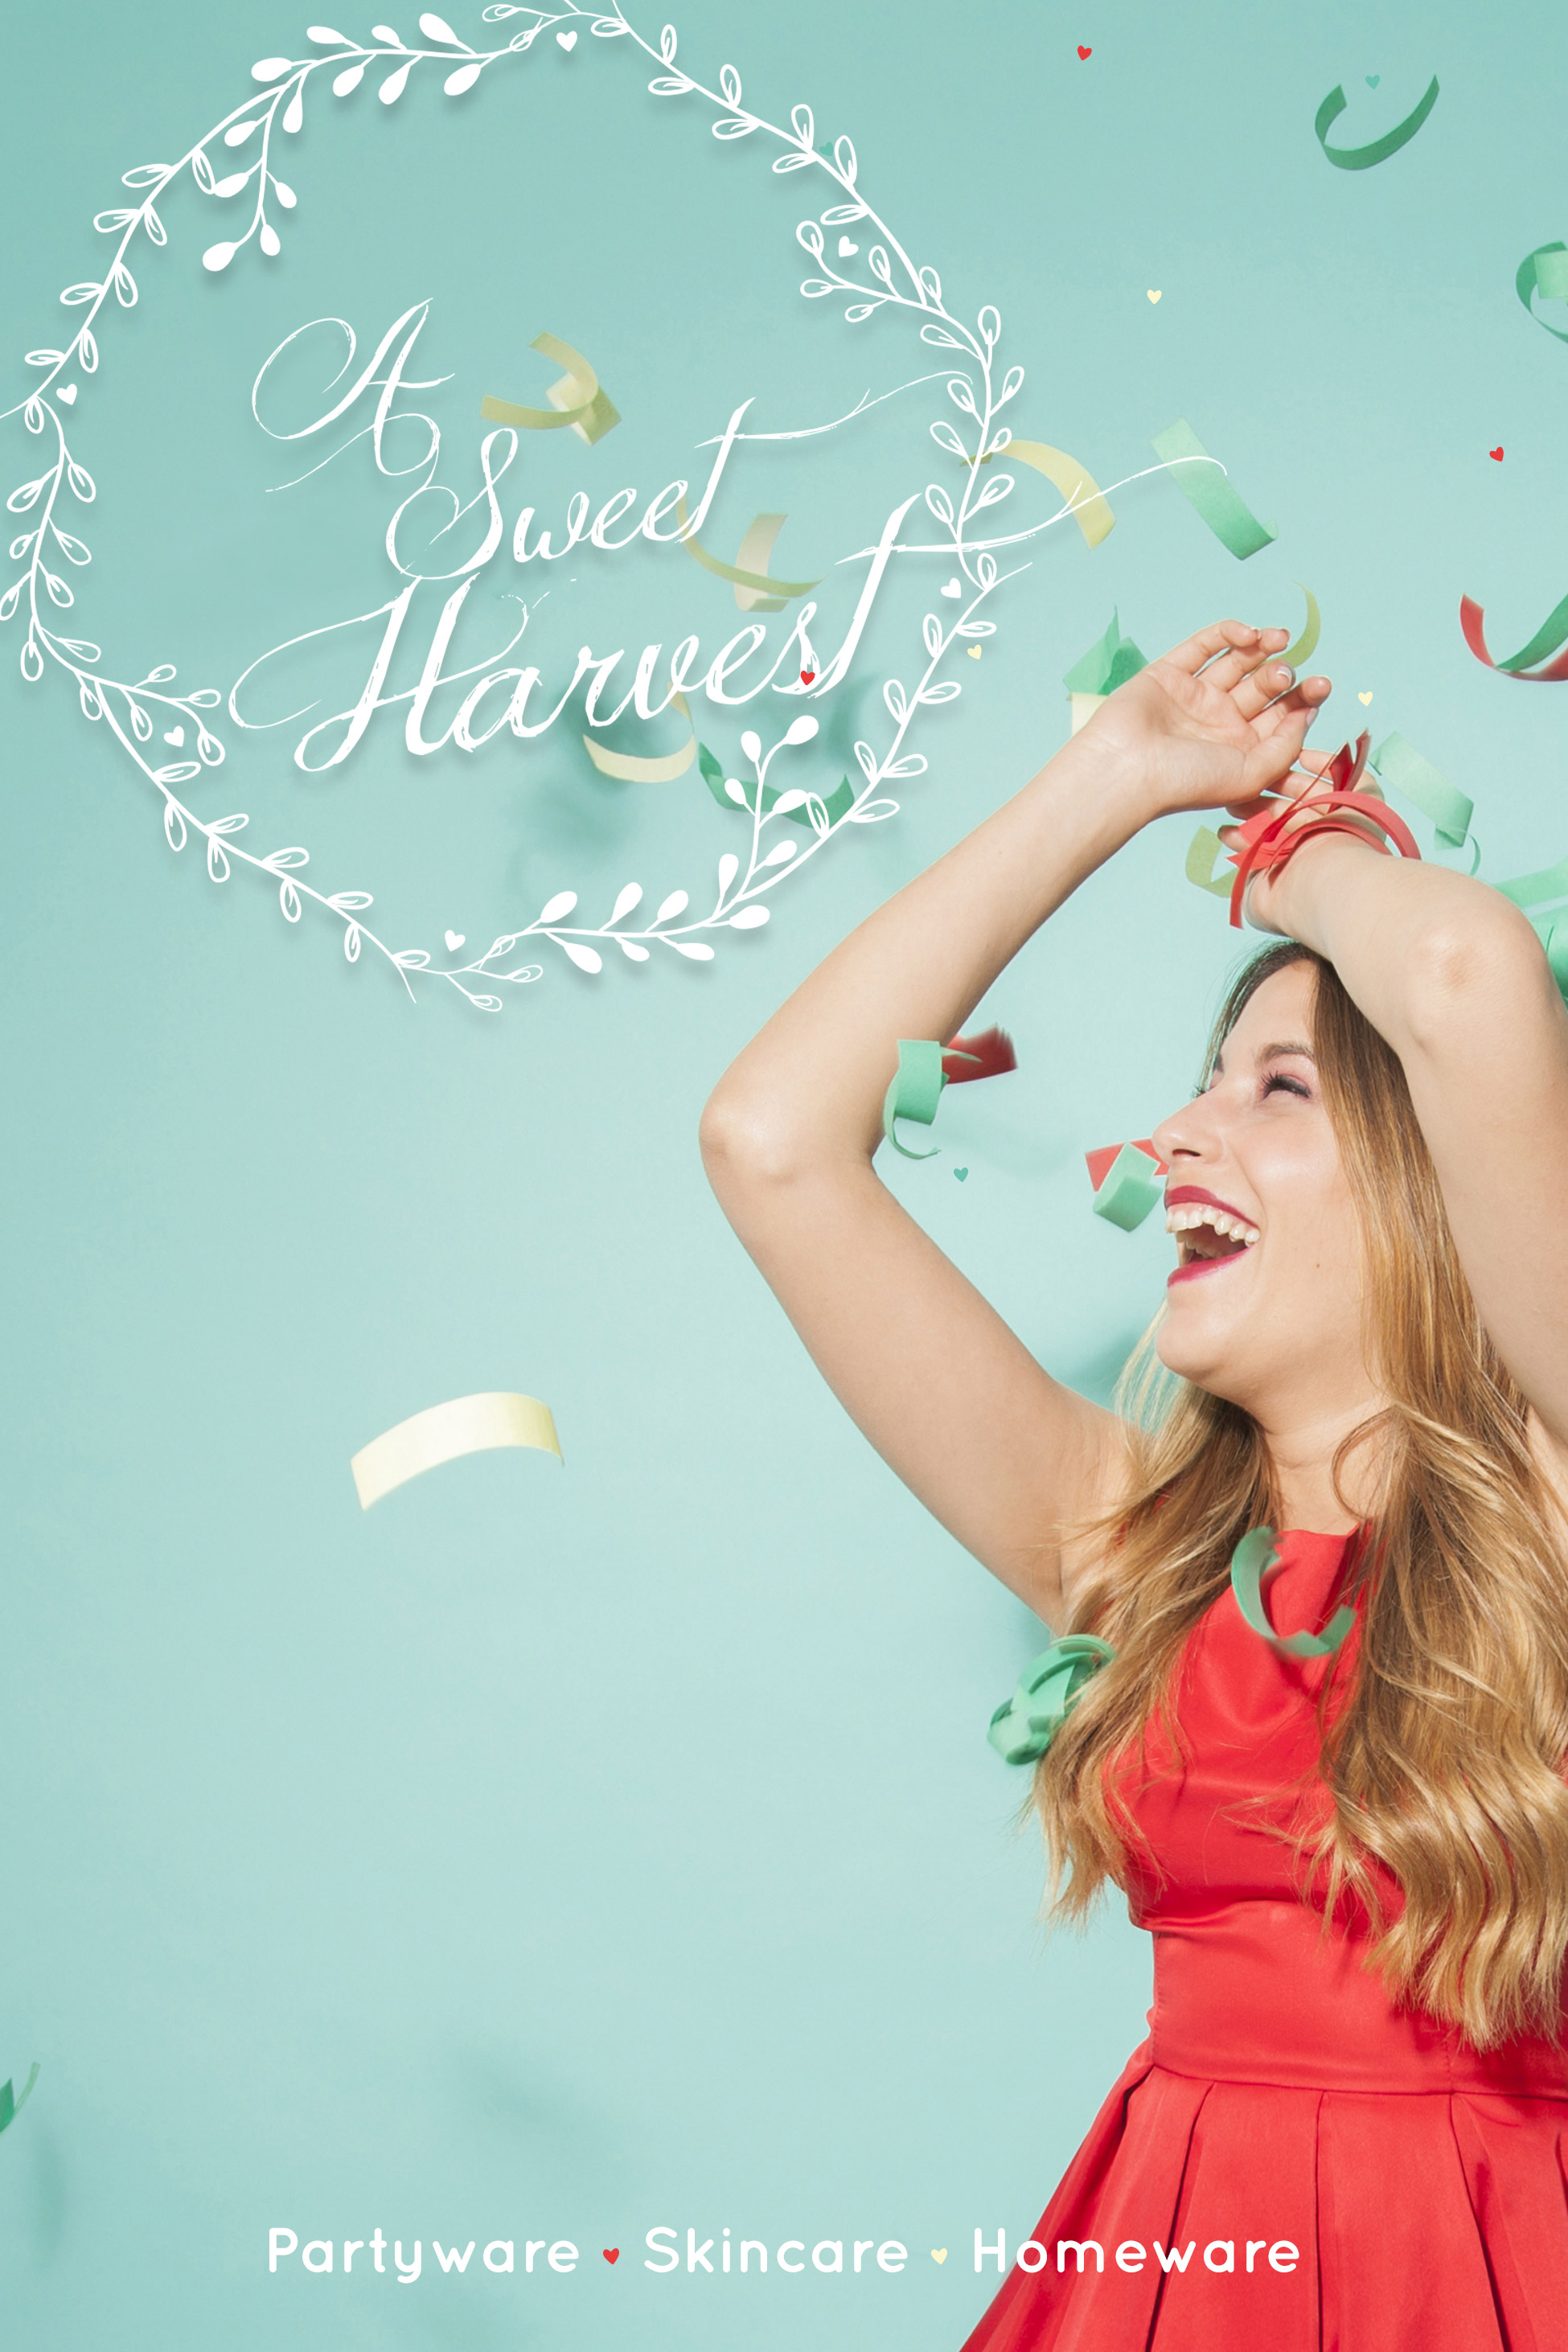 A Sweet Harvest - Corporate Identity